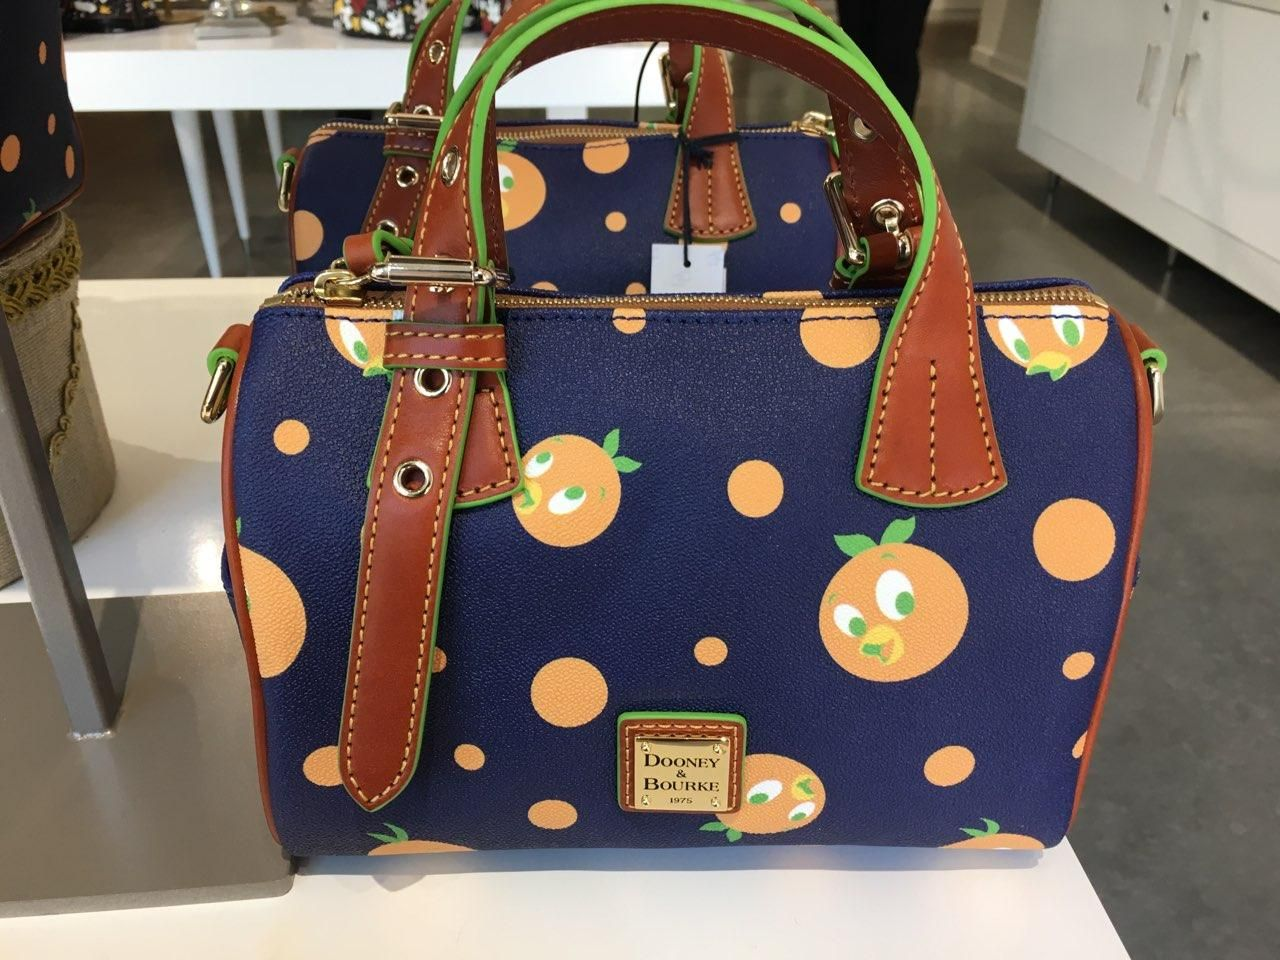 c30c3dc5960d The Orange Bird Dooney and Bourke Bags Have Arrived And They Are Heavenly!